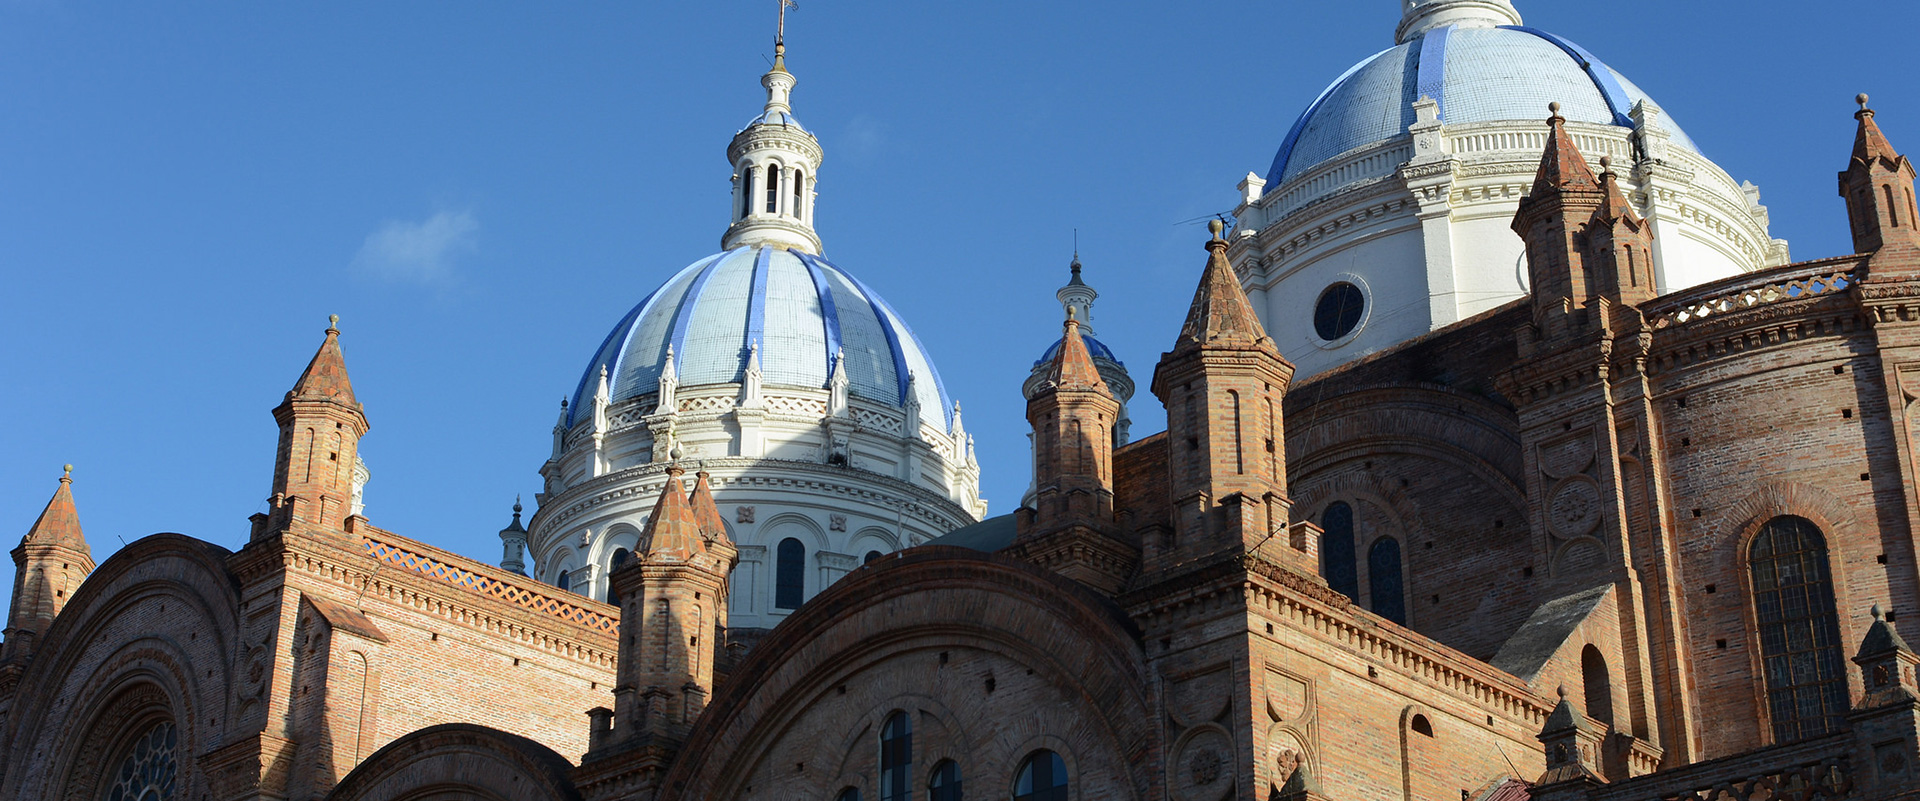 Cuenca Three Blue Domes (Tres Cruces)